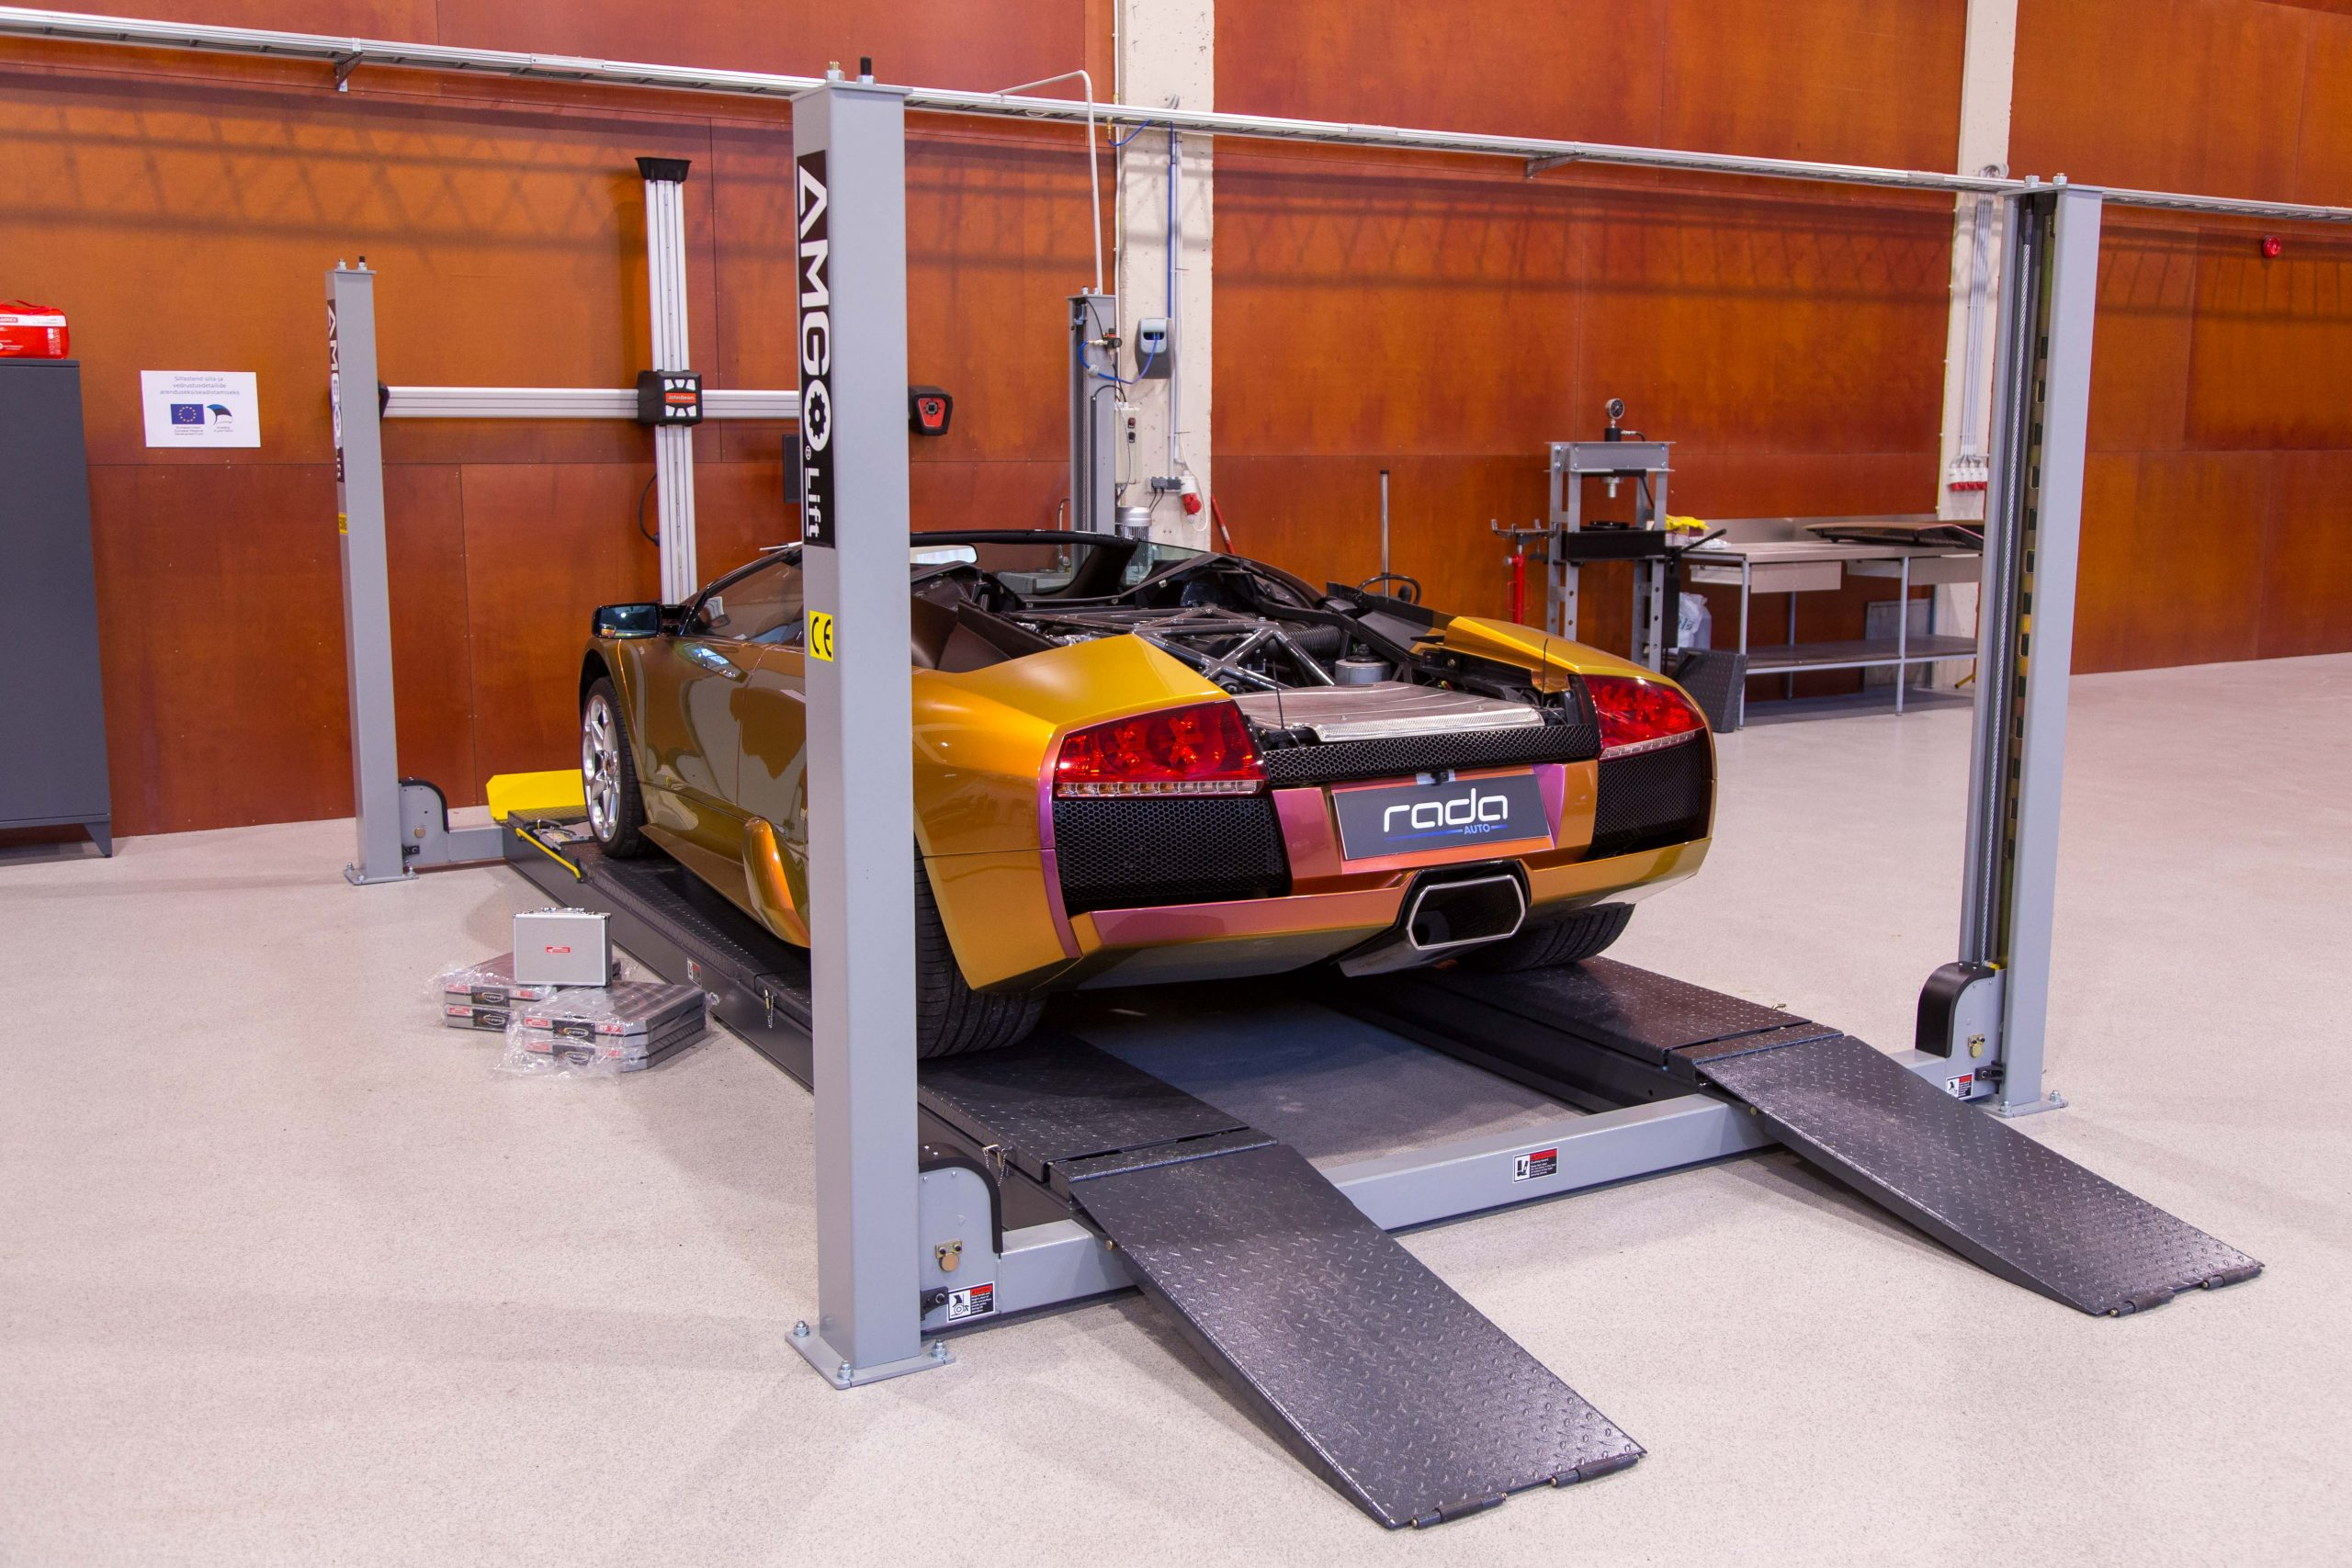 Wheel alignment and corner weights